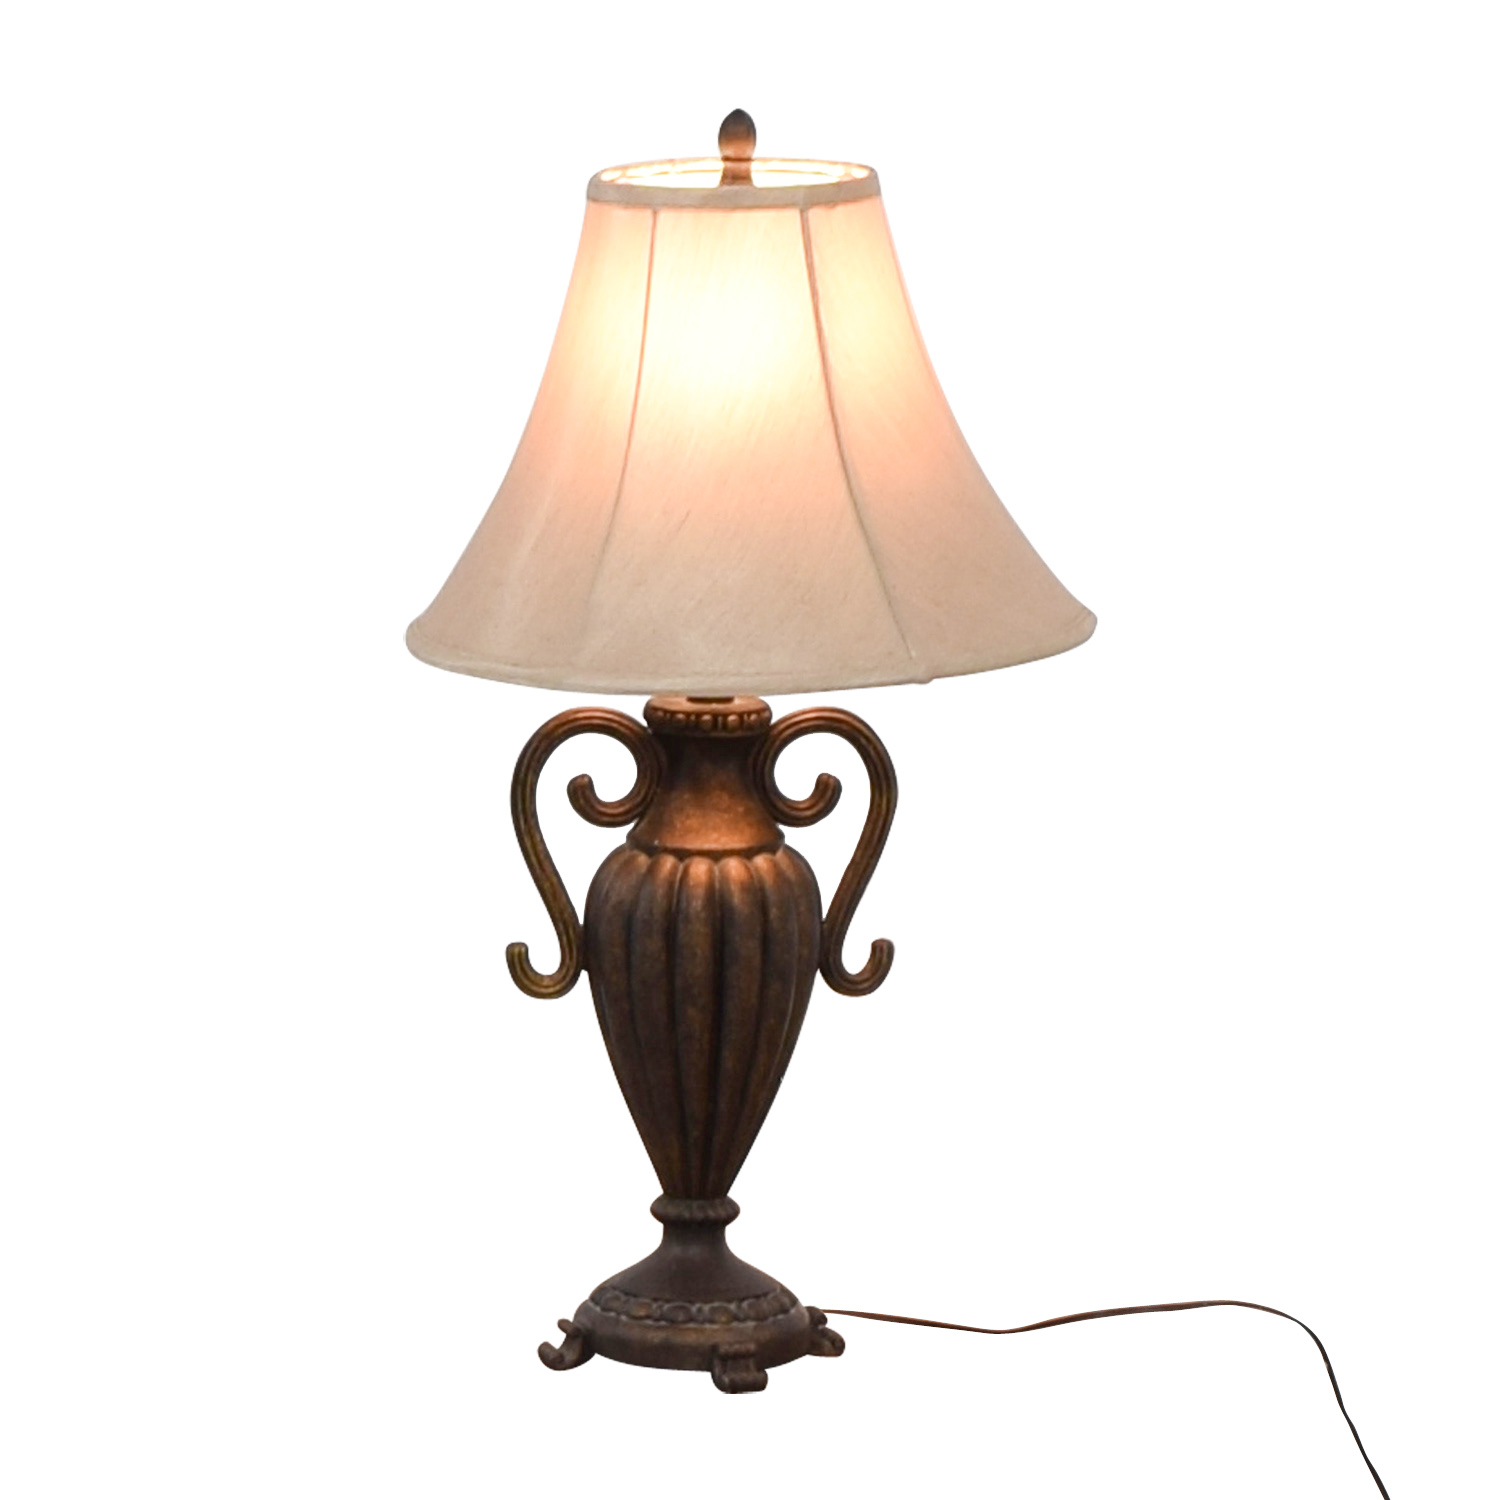 Ornate Faux Metalwork Table Lamp nyc